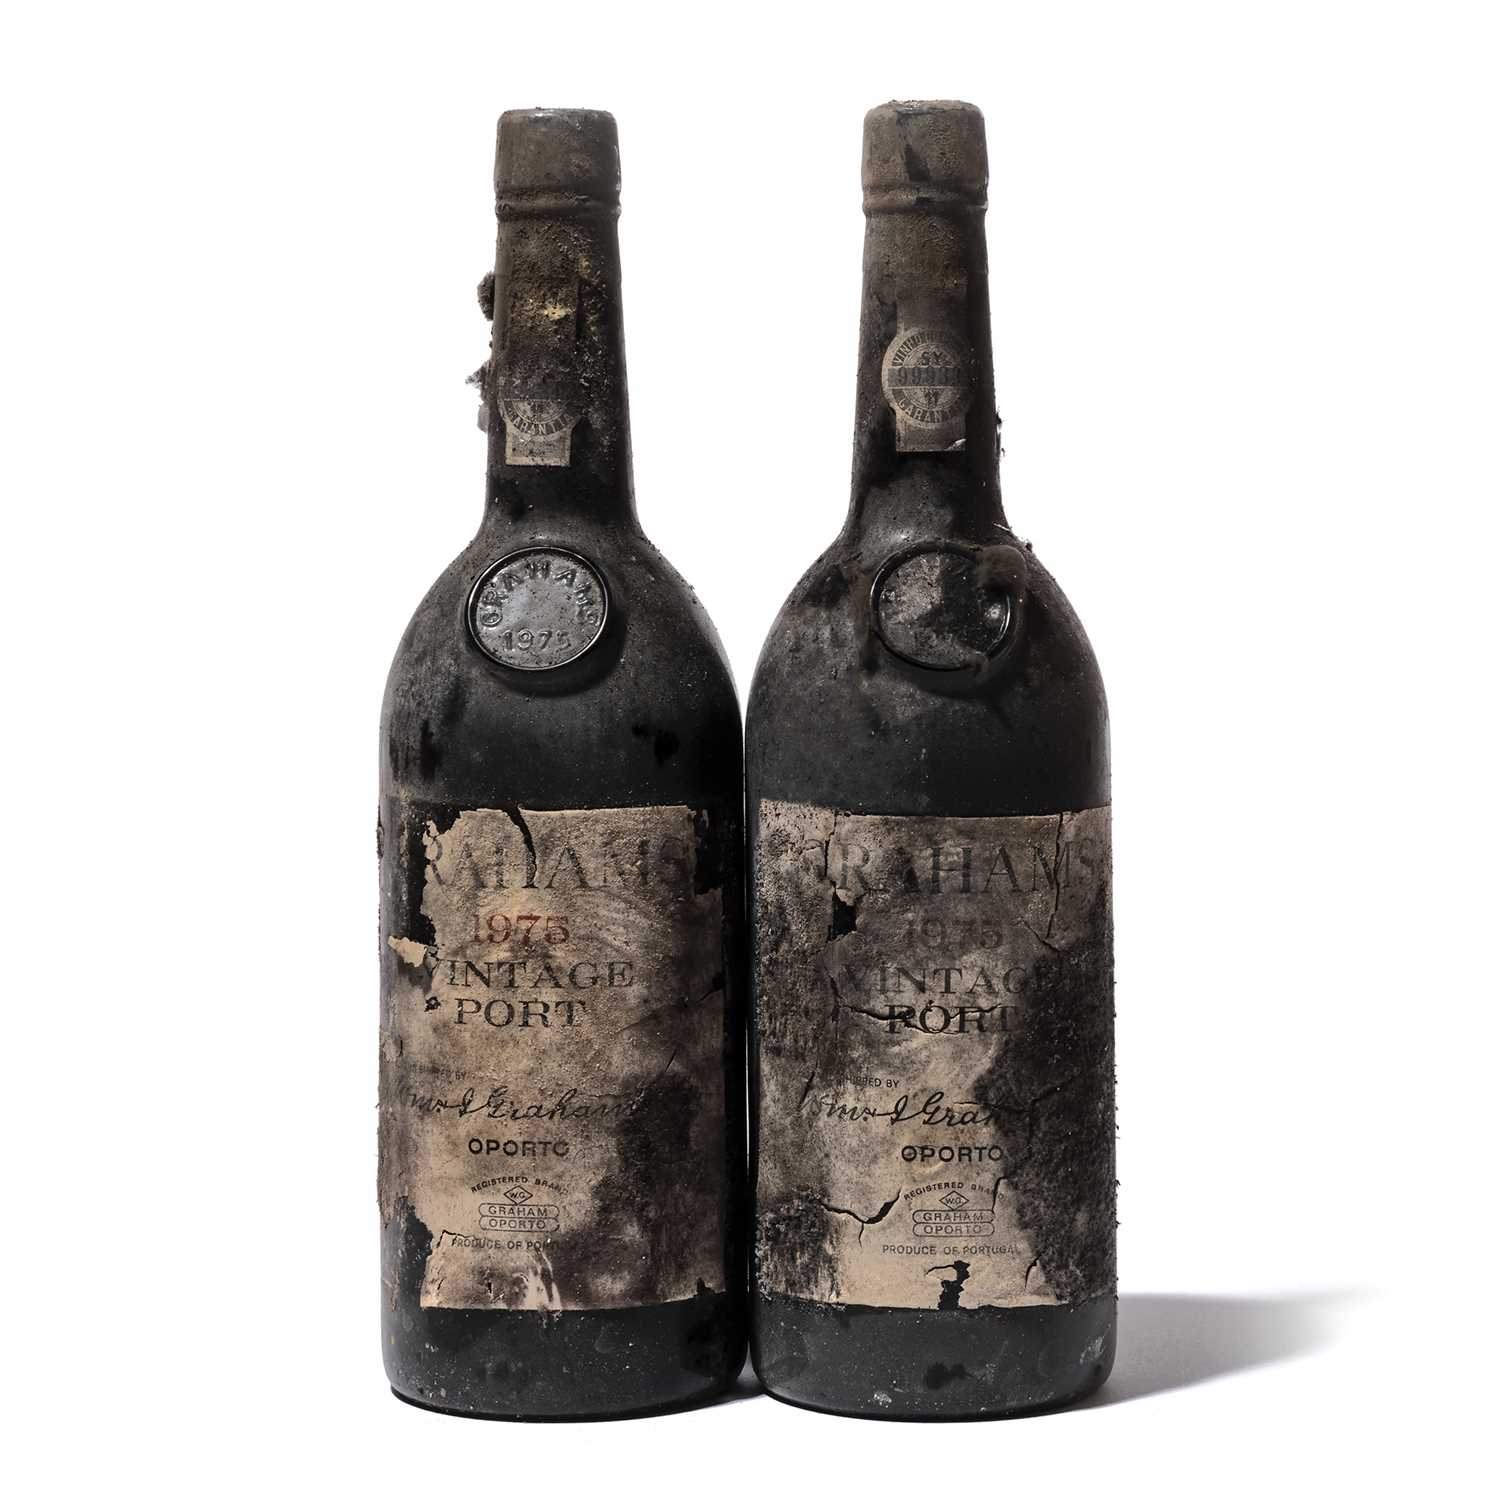 Lot 5 - 12 bottles 1975 Graham